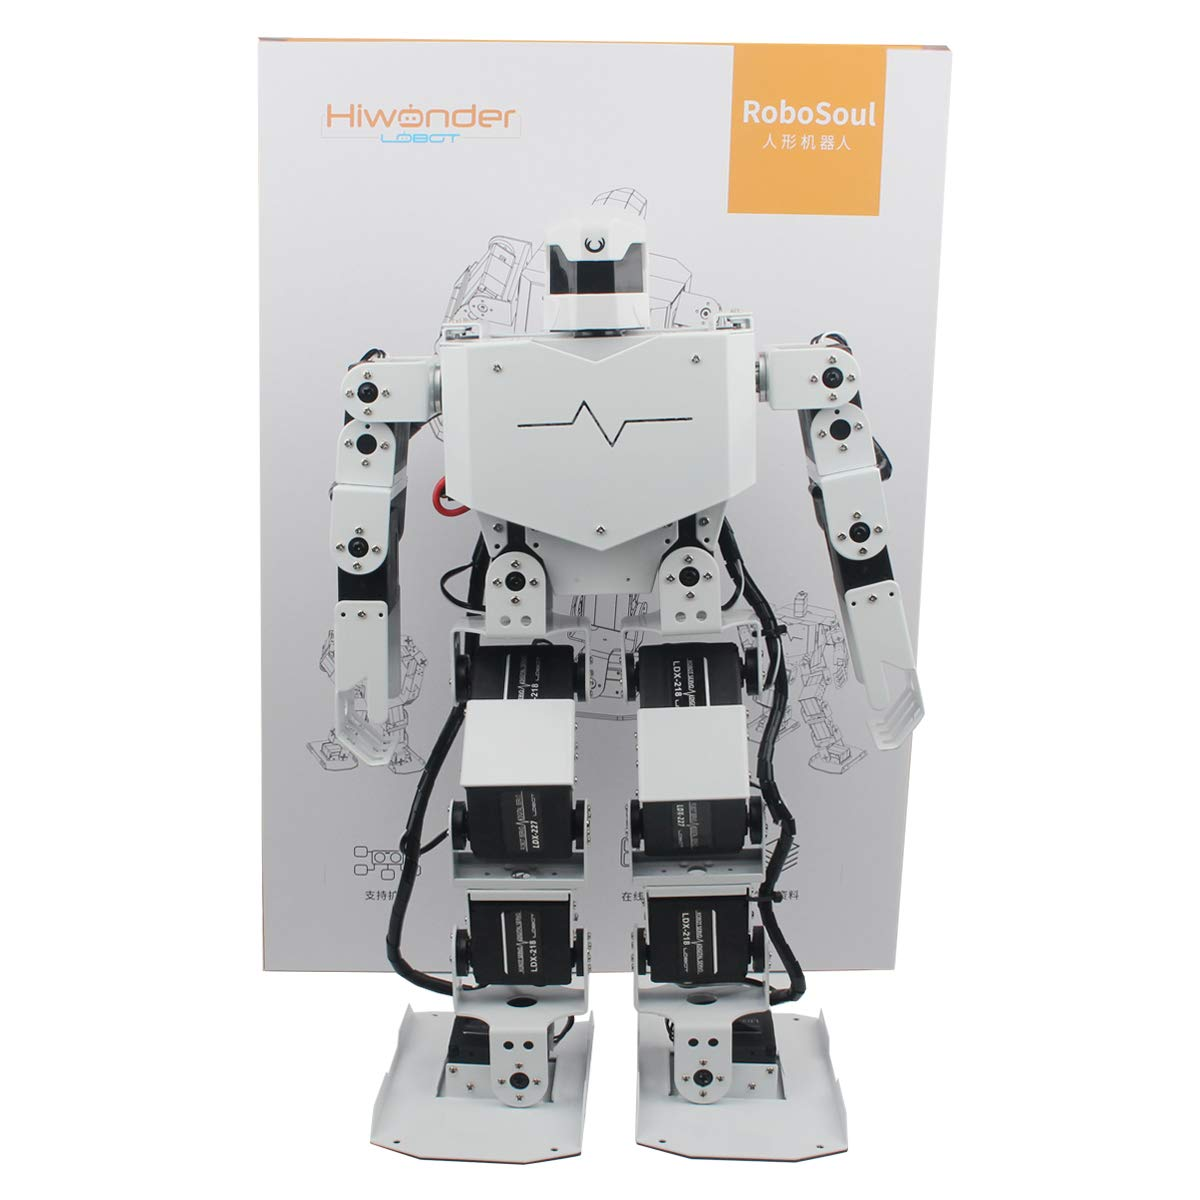 Hiwonder H3S 16DOF Biped Humanoid Robot Kit with Free APP, MP3 Module, Detailed Video Tutorial Support Sing Dance(Assembled) by LewanSoul (Image #4)